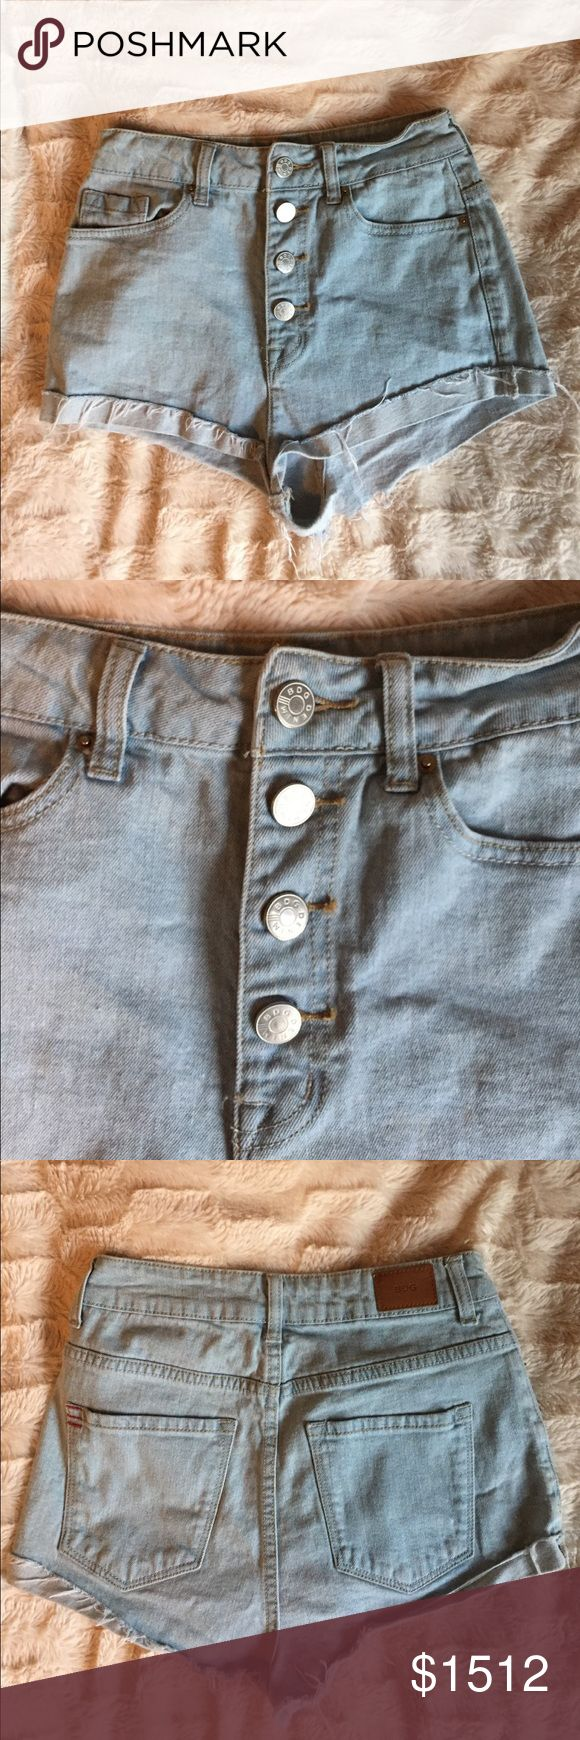 BDG - Urban Outfitters - High Waisted Shorts Urban Outfitters Light Wash high waisted shorts, button fly Urban Outfitters Shorts Jean Shorts